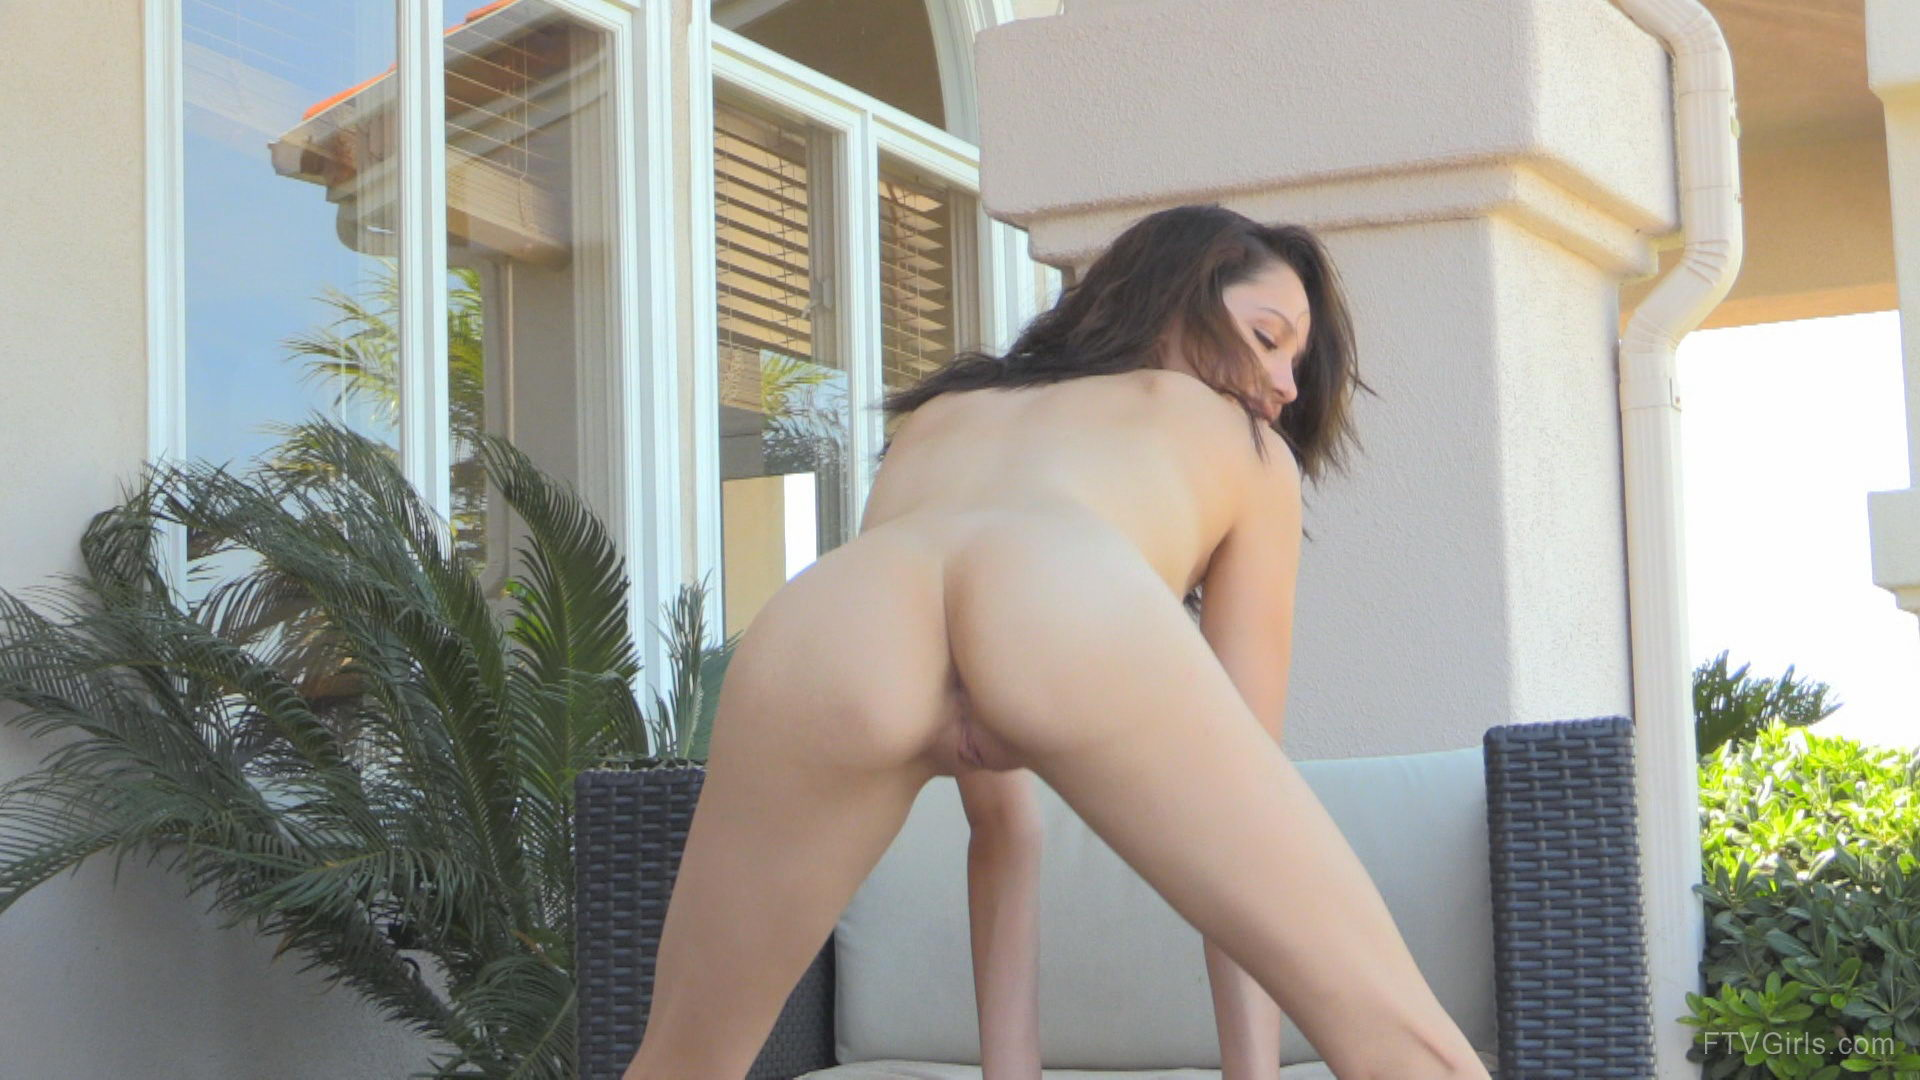 Teenager Twerking Naked